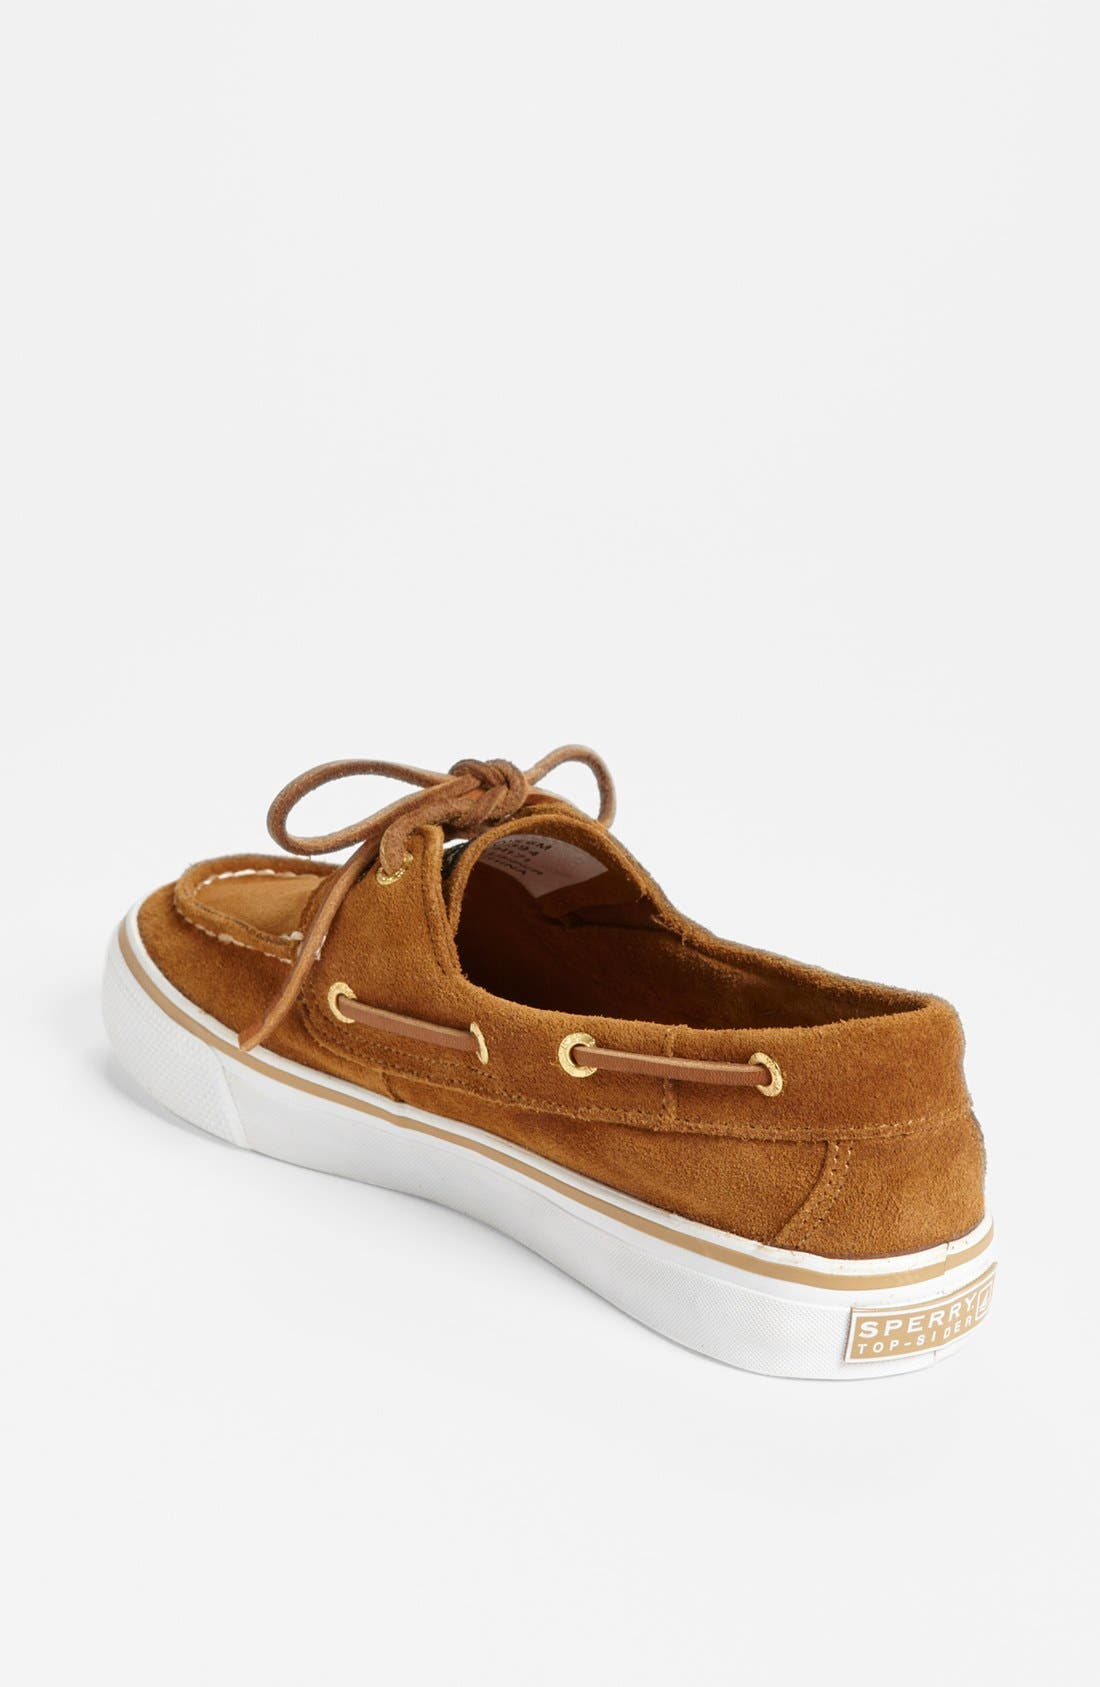 Top-Sider<sup>®</sup> 'Bahama' Sequined Boat Shoe,                             Alternate thumbnail 139, color,